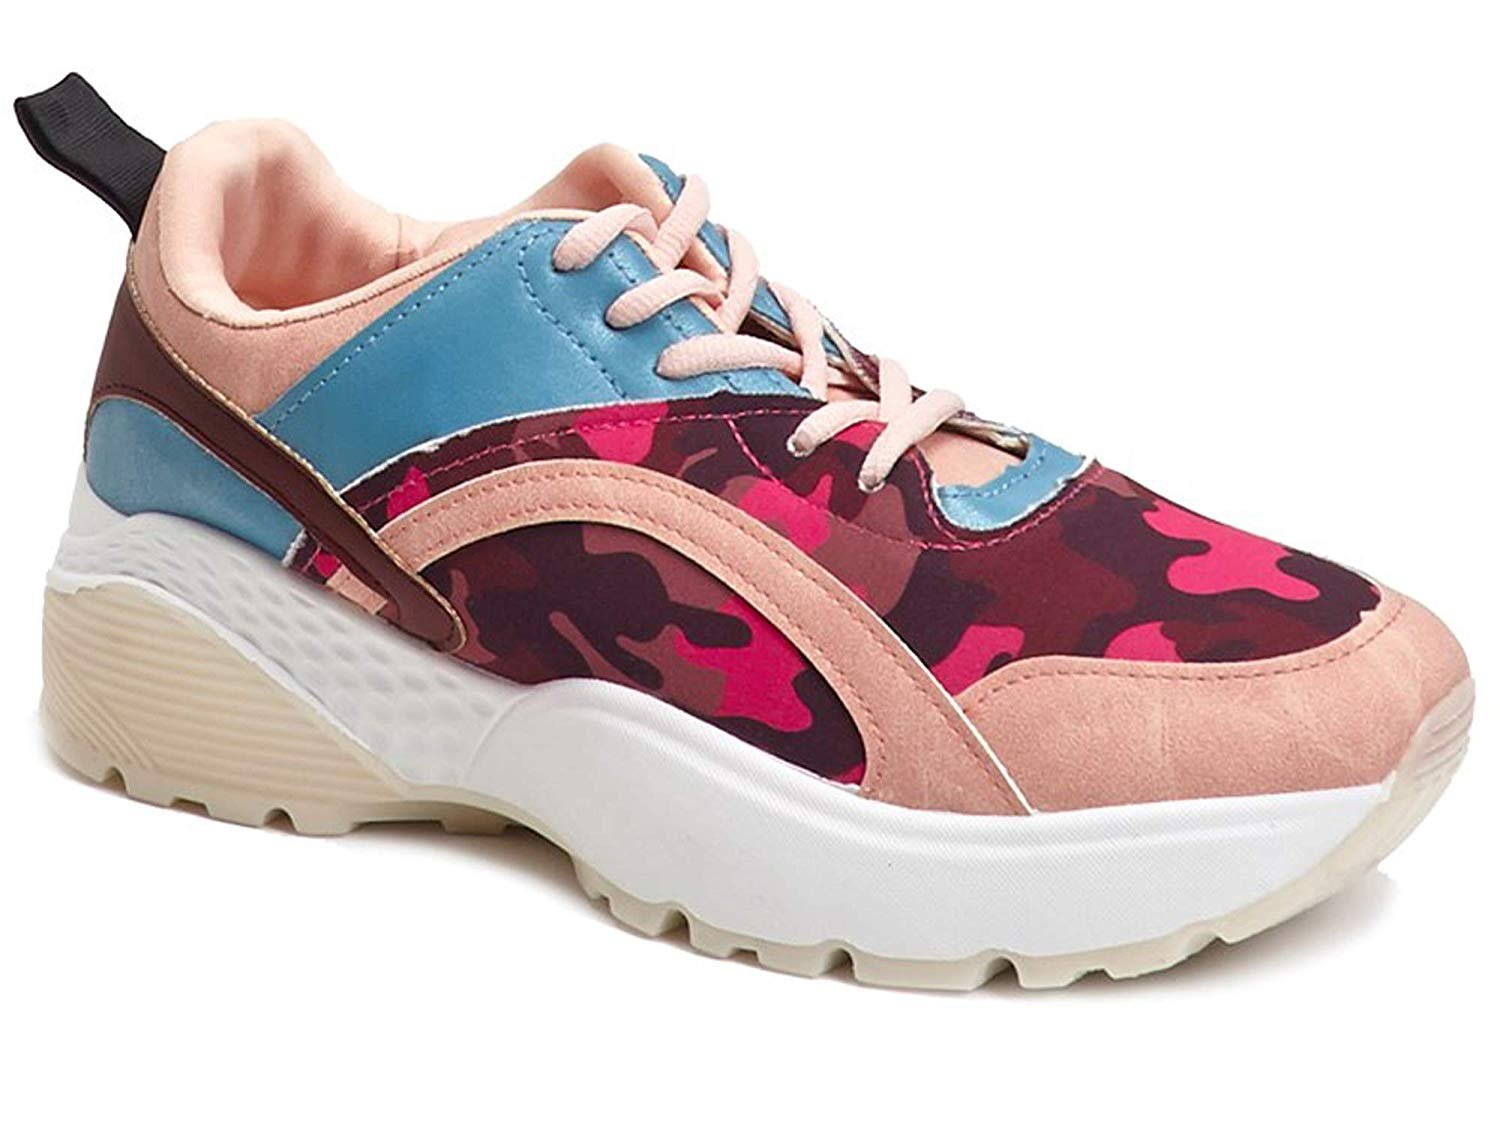 Chunky Dad Shoes Women's Sneakers Ugly